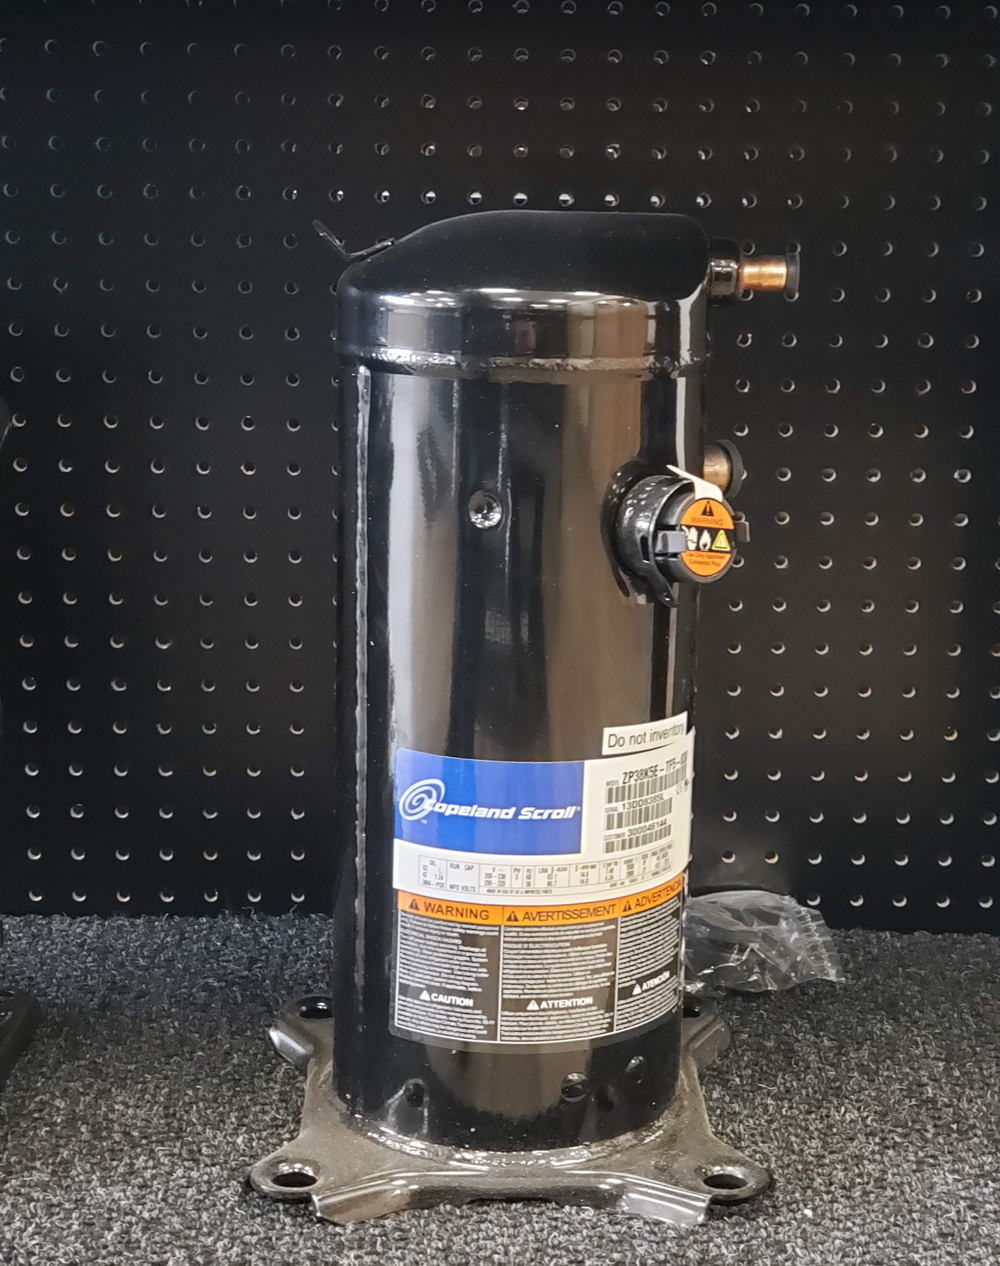 Copeland scroll compressor For various applications